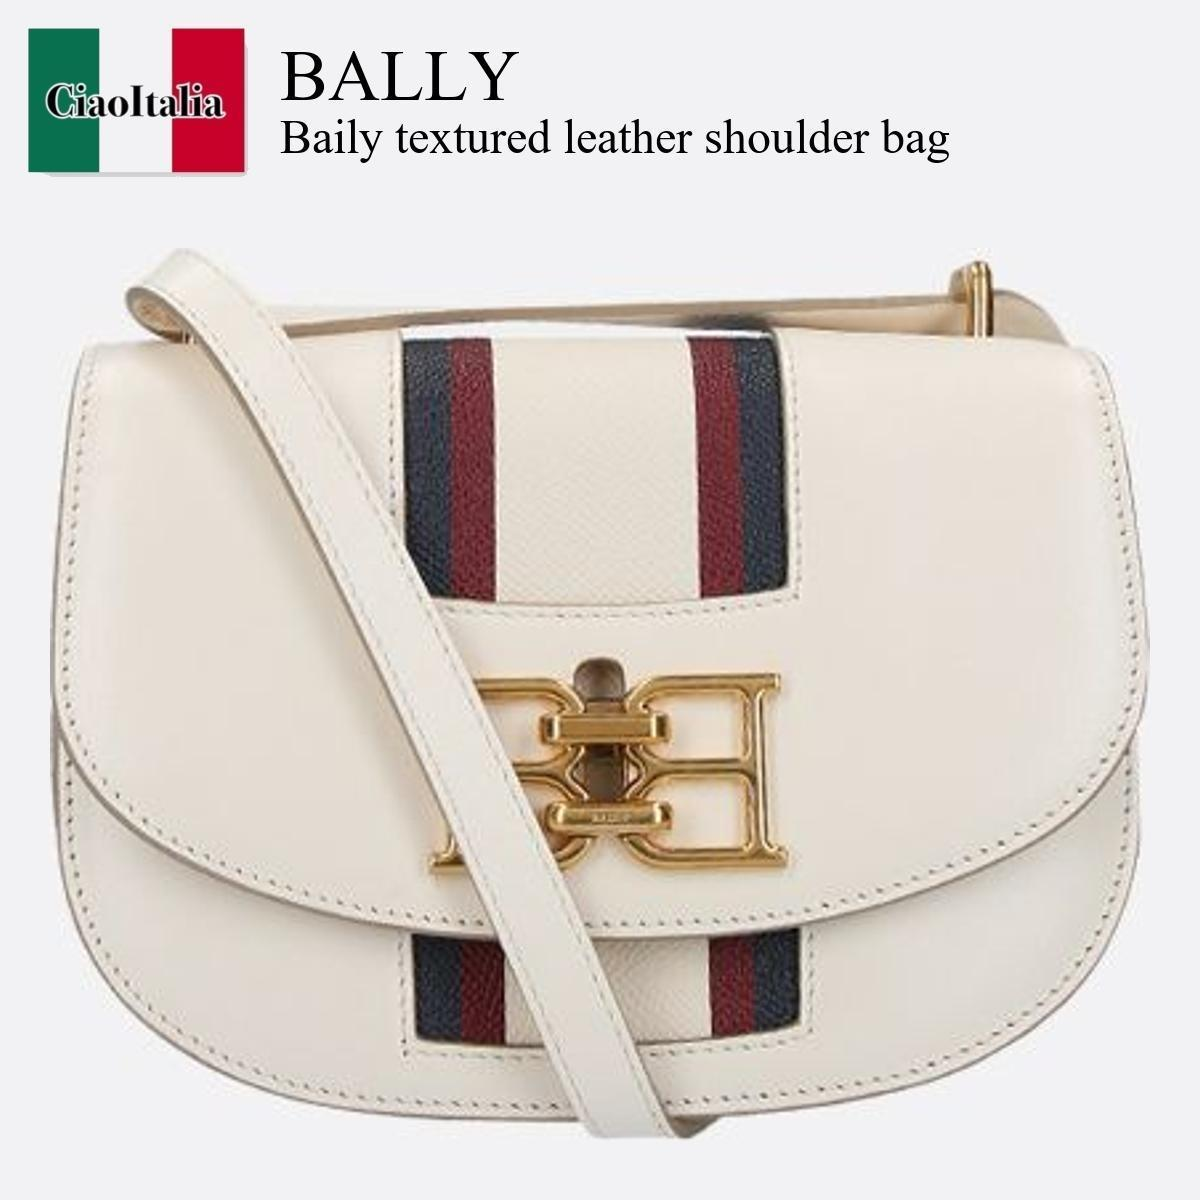 Bally Baily textured leather shoulder bag (BALLY/ショルダーバッグ・ポシェット) BAILY TEXTURED LEATHER SHOULDER BAG  BAILYTSP  BAILYTSP  BAILYTSP623686603015BONE15